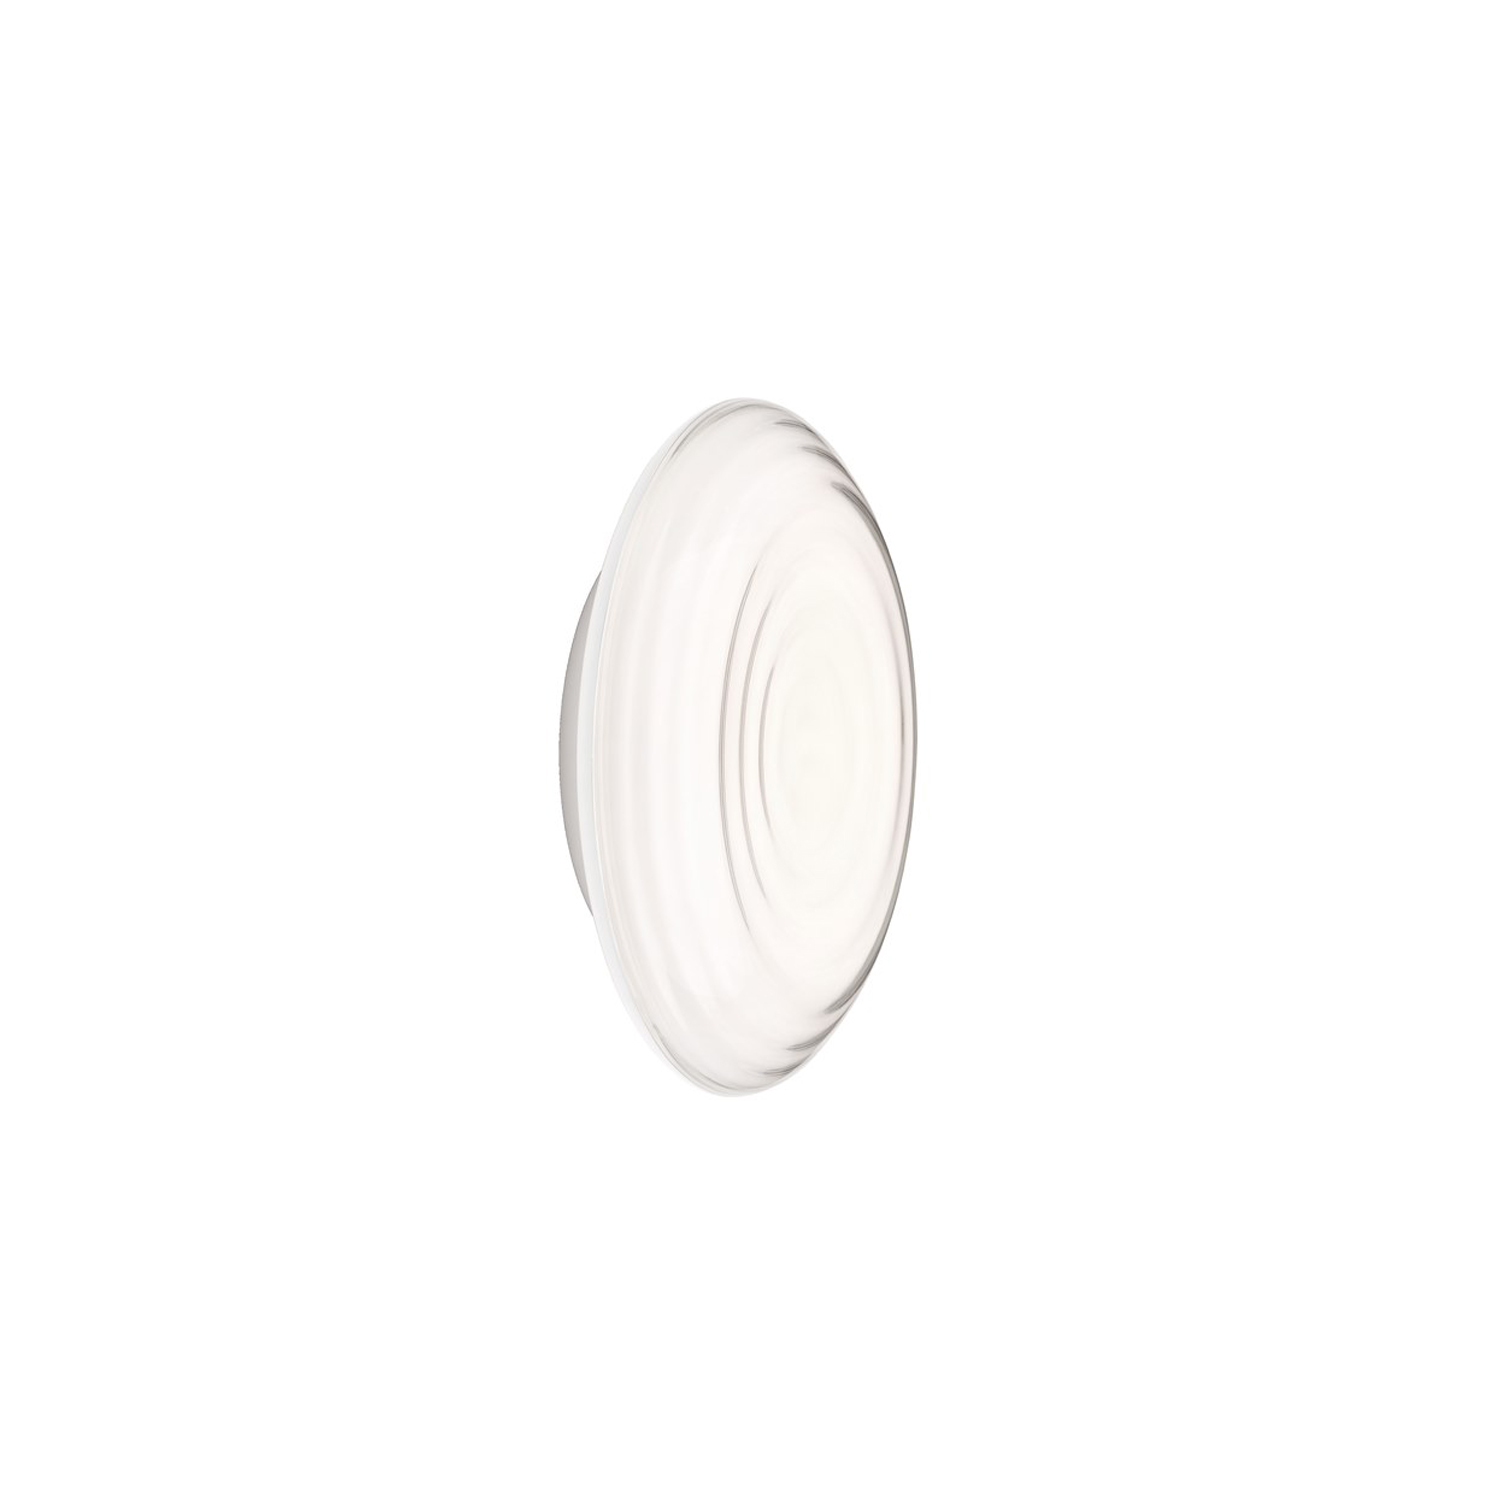 Ripls Wall Light - The fixture emits diffused light. The front consist of a concave clear front with ripples like rings in water. The ripples refract light in the front creating a subtle change of appearance depending on viewing angle. The concave form outline the refracting creating a higher intensity light towards the center fading off toward the edges. A diffuser offset sits deep in the fixture creating a sense of depth in the front. A slim housing creates the appearance of a floating disk while perforations in the opaque housing allows indirect light to create a halo around the fixture. | Matter of Stuff